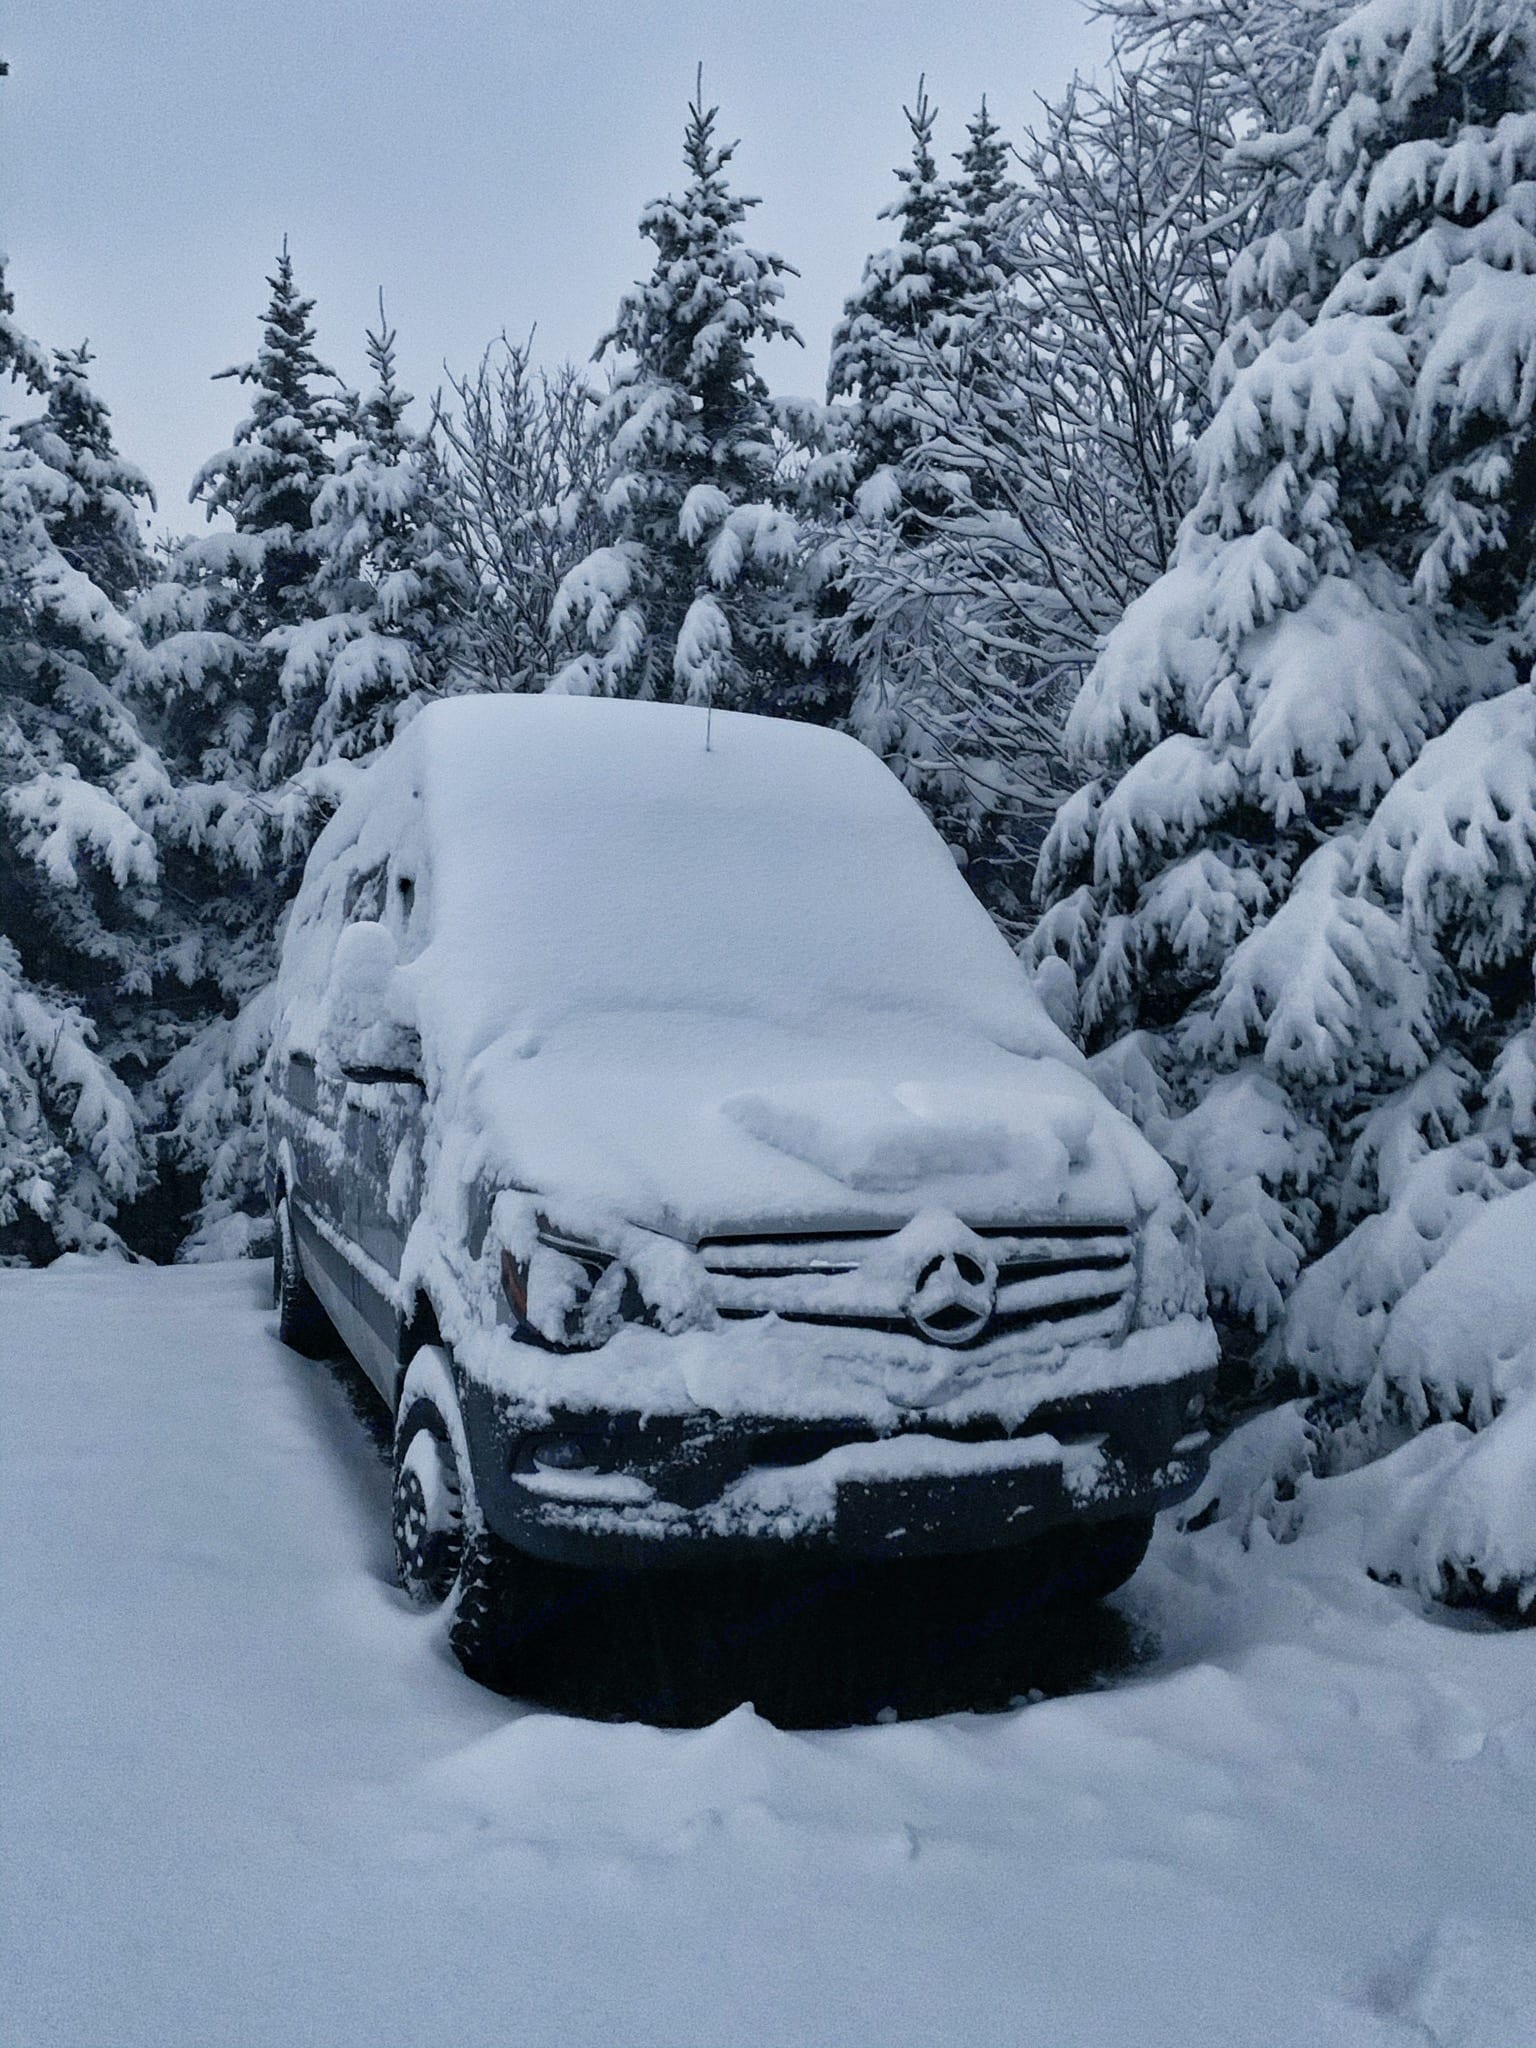 Snowy morning at the highest elevation trailhead in New England.. Mercedes SPRINTER 2018